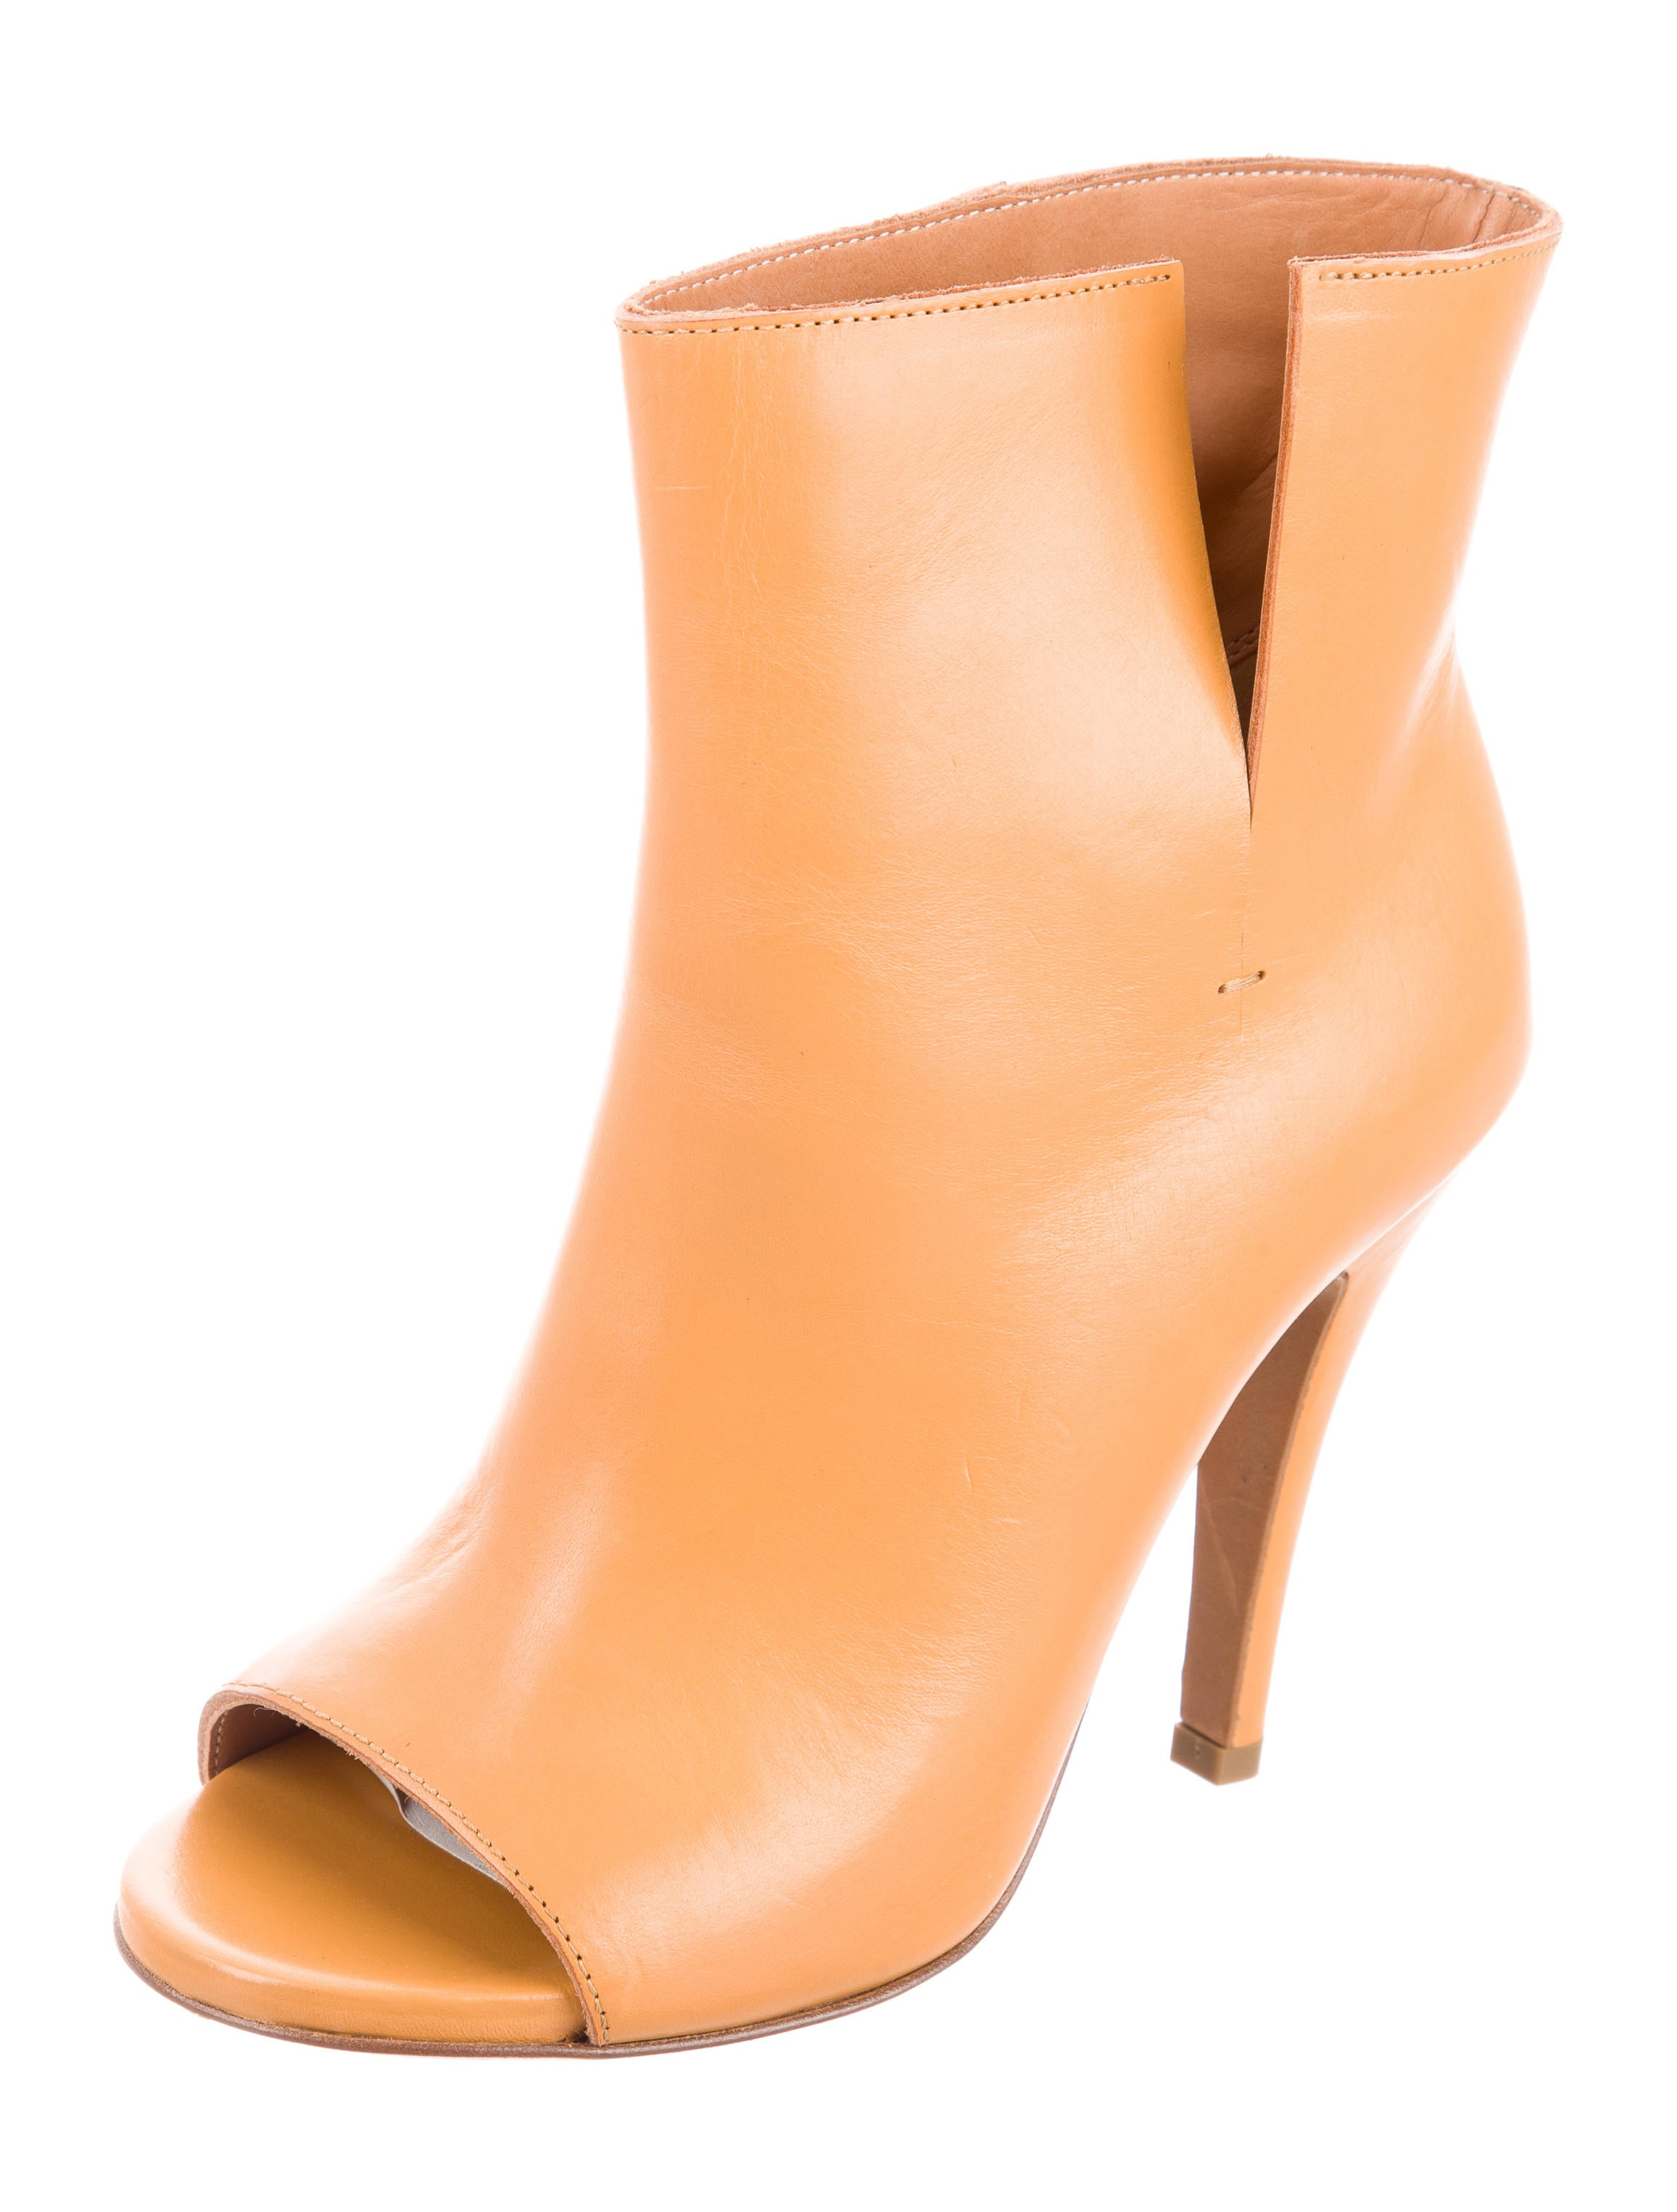 Maison Margiela Hessen Peep-Toe Ankle Boots cheap sale clearance store 100% guaranteed cheap price really sale online cheap order kN49Zx